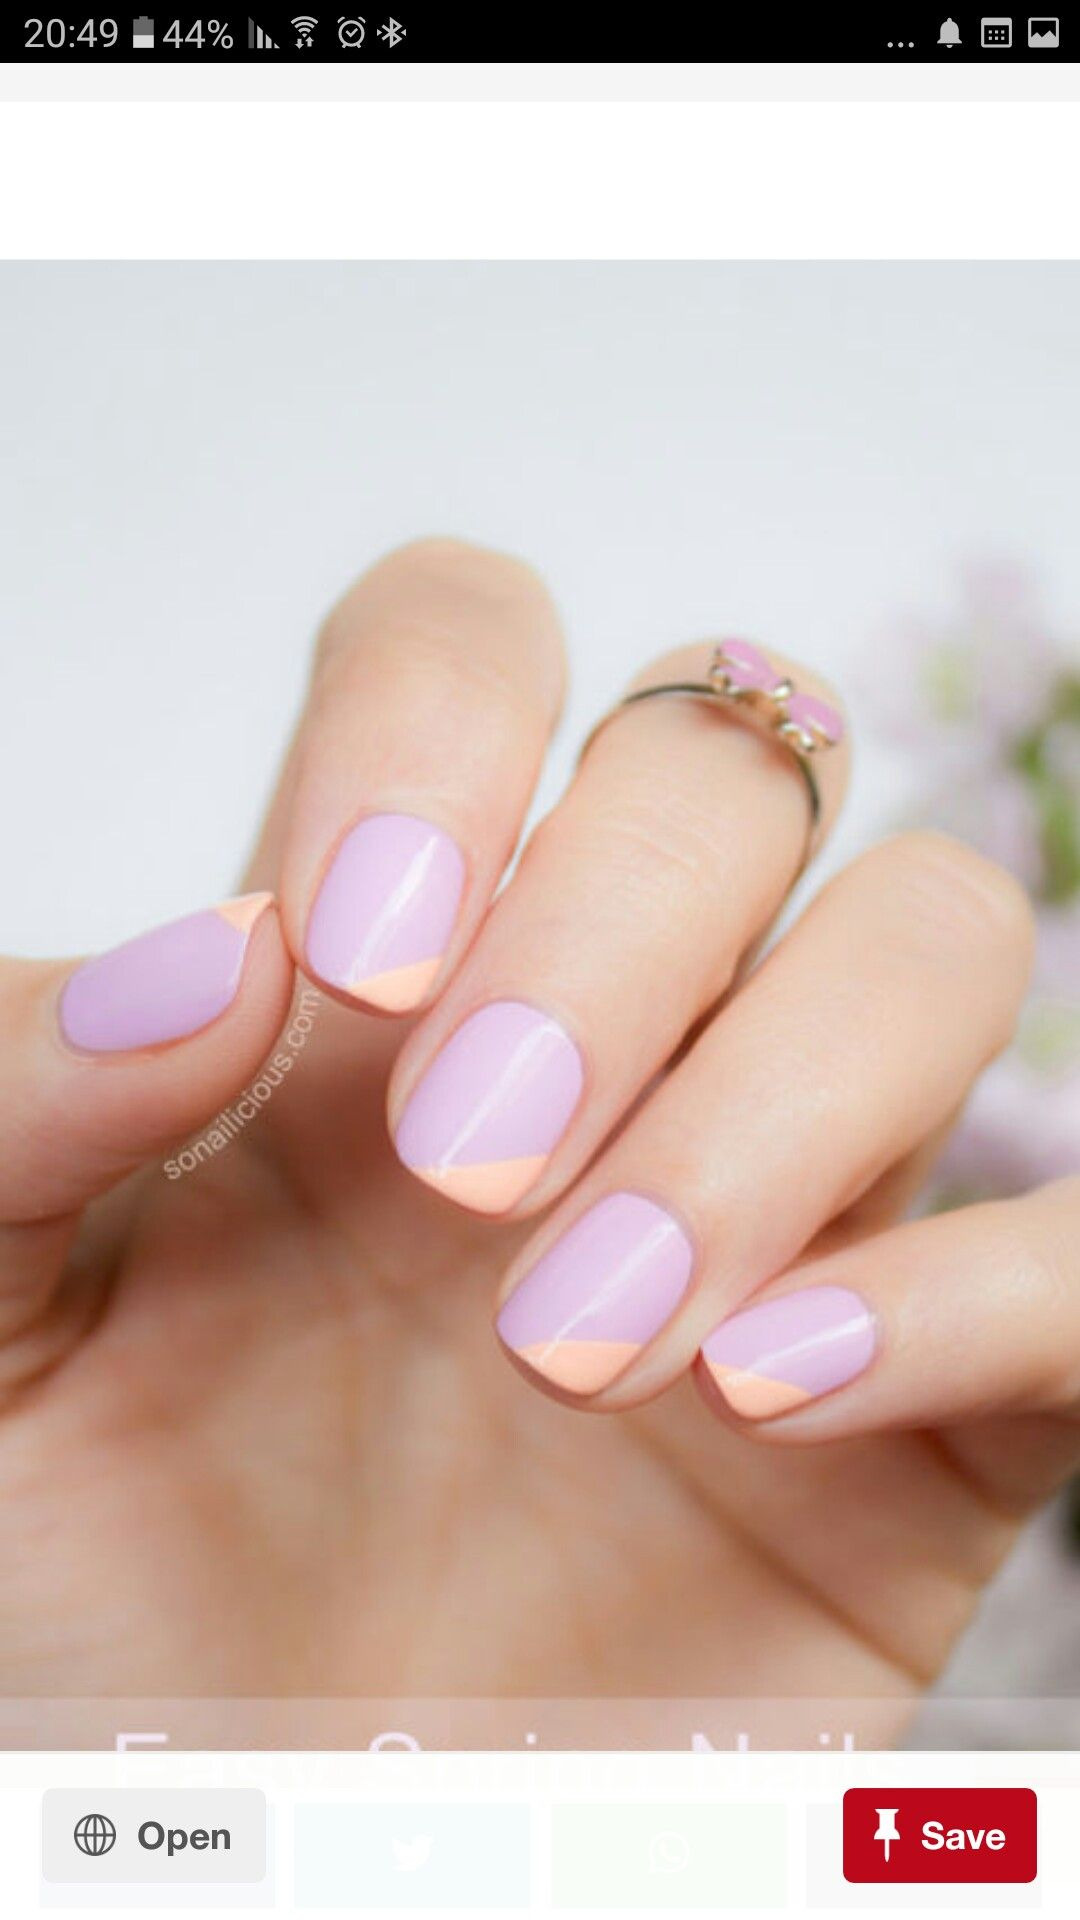 Pin by shir harel on futhere nail art pinterest